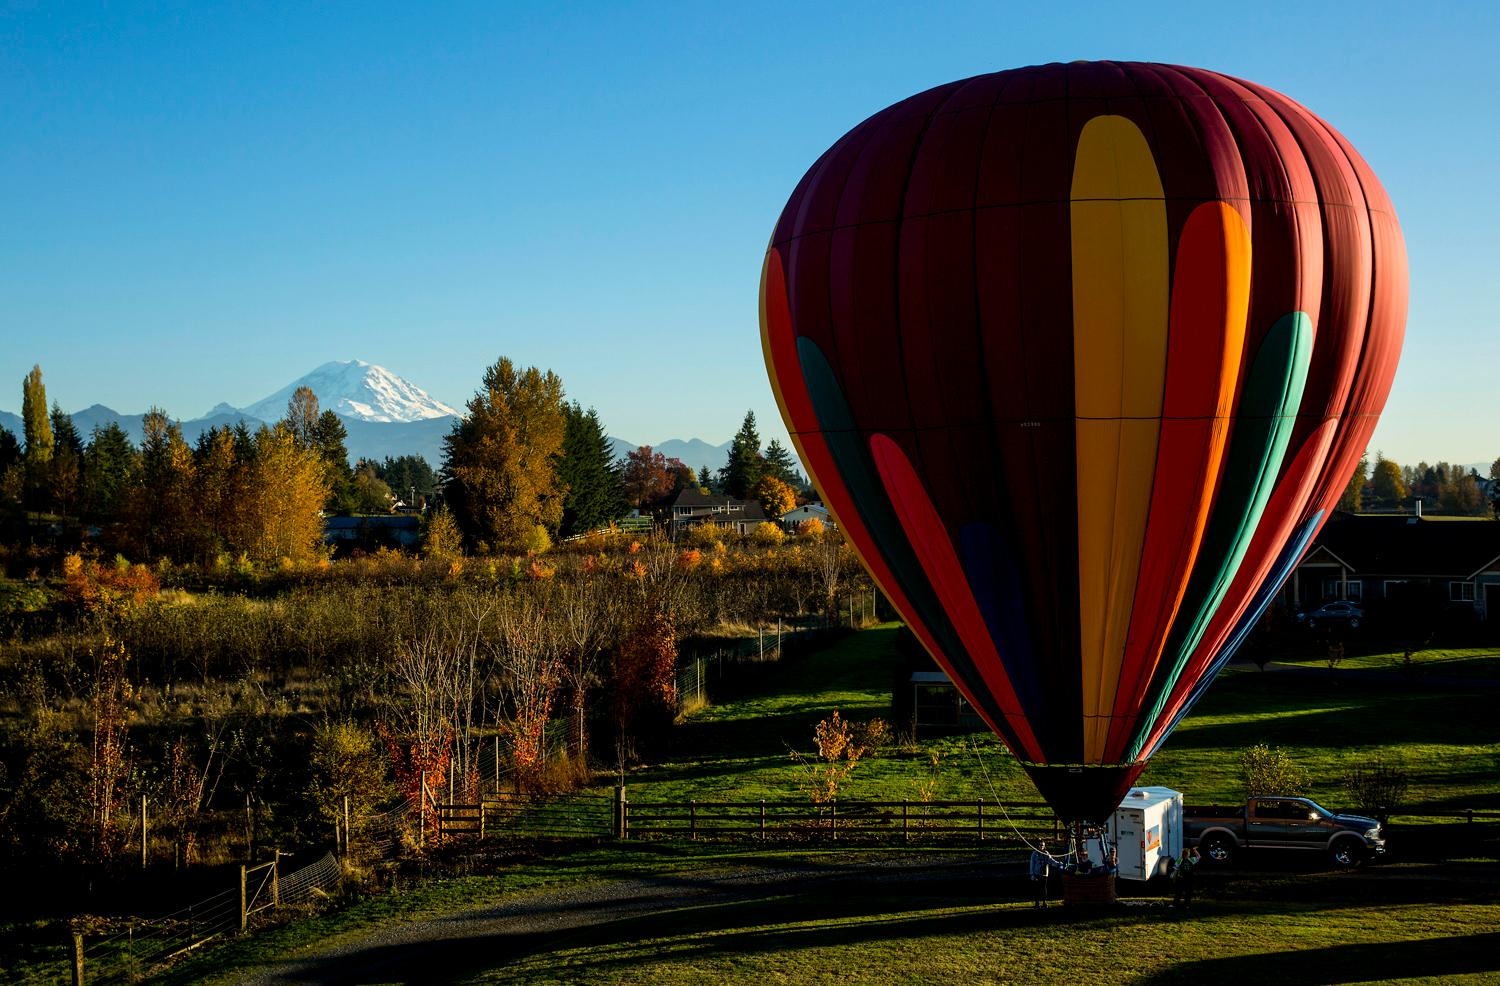 The fine folks at Seattle Ballooning gave us the opportunity to tag along on one of their evening flights to watch the sunset, drink fine champagne, touch the top of trees and glide over the White River in their French-style hot air balloon. Check out their website at www.SeattleBallooning.com (Sy Bean / Seattle Refined)